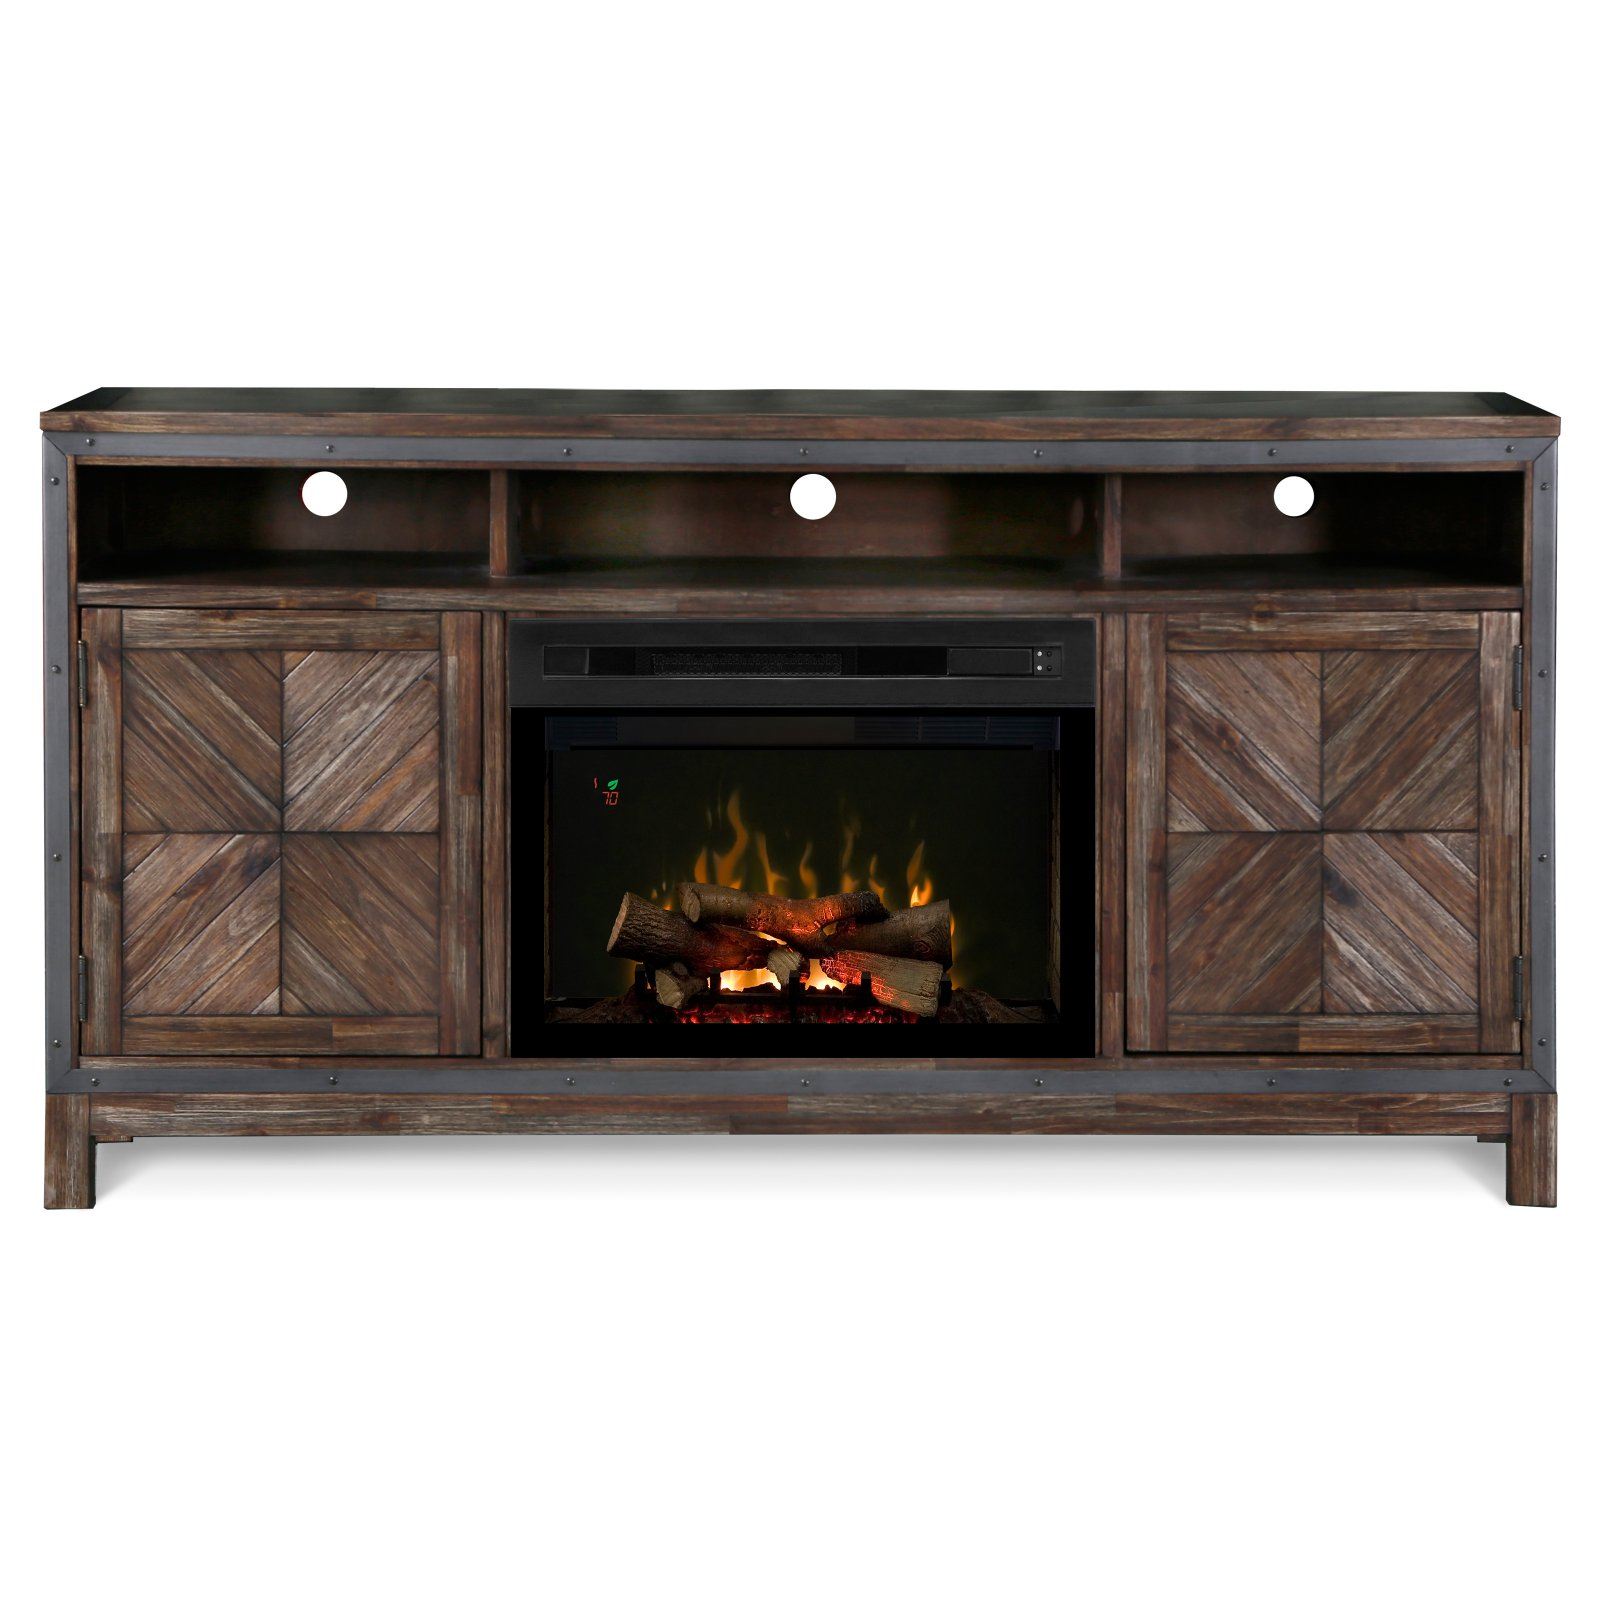 """Dimplex Wyatt Media Console Electric Fireplace With Logs for TVs up to 50"""", Barley Brown"""